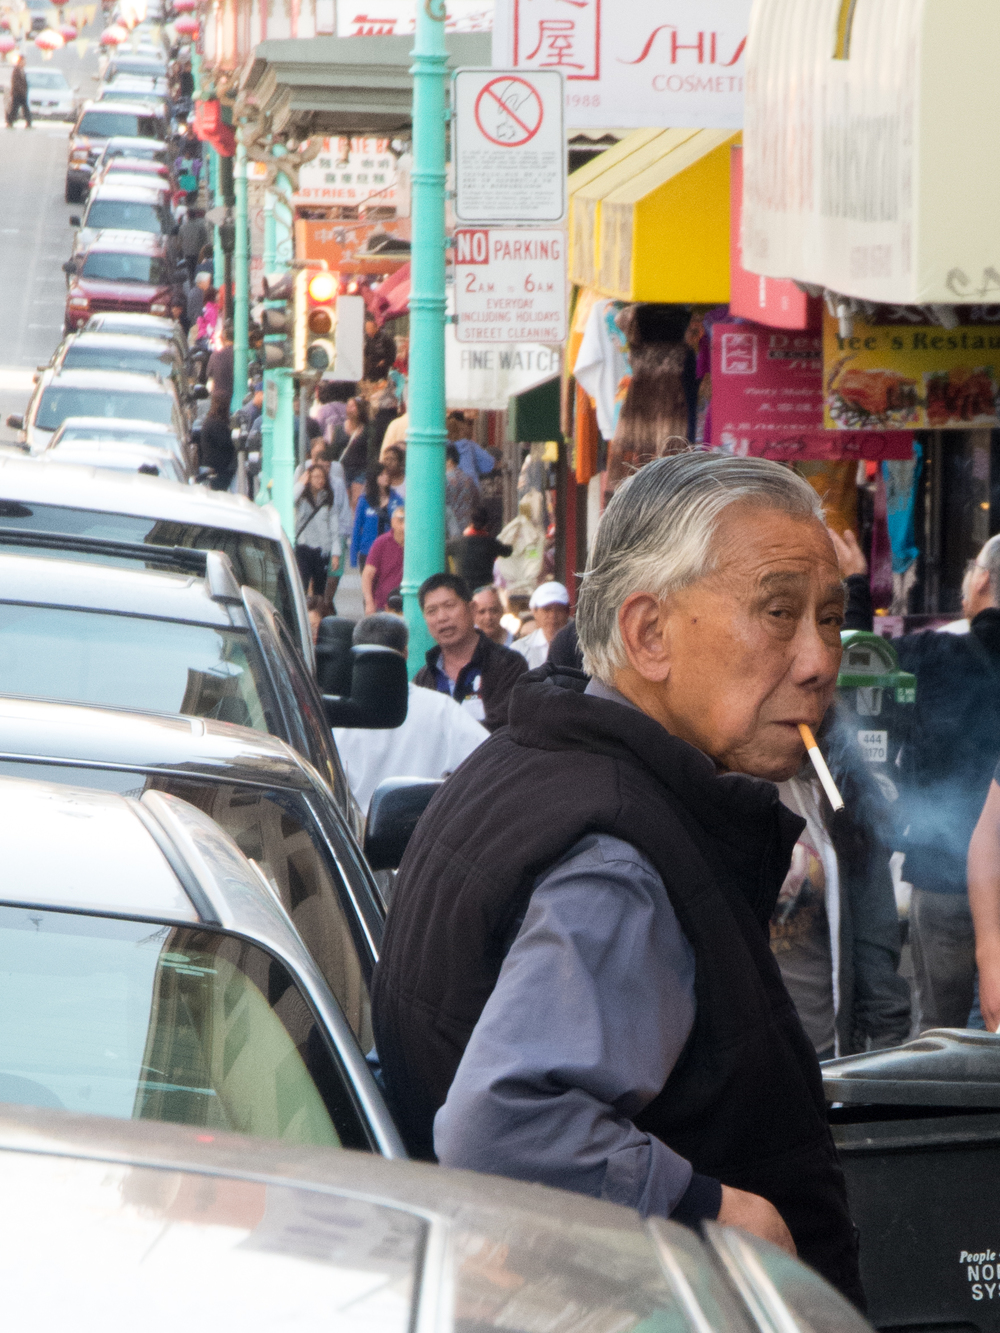 A man takes a cigarette break on Grant Street in San Francisco's Chinatown Monday, Aug. 19, 2013.